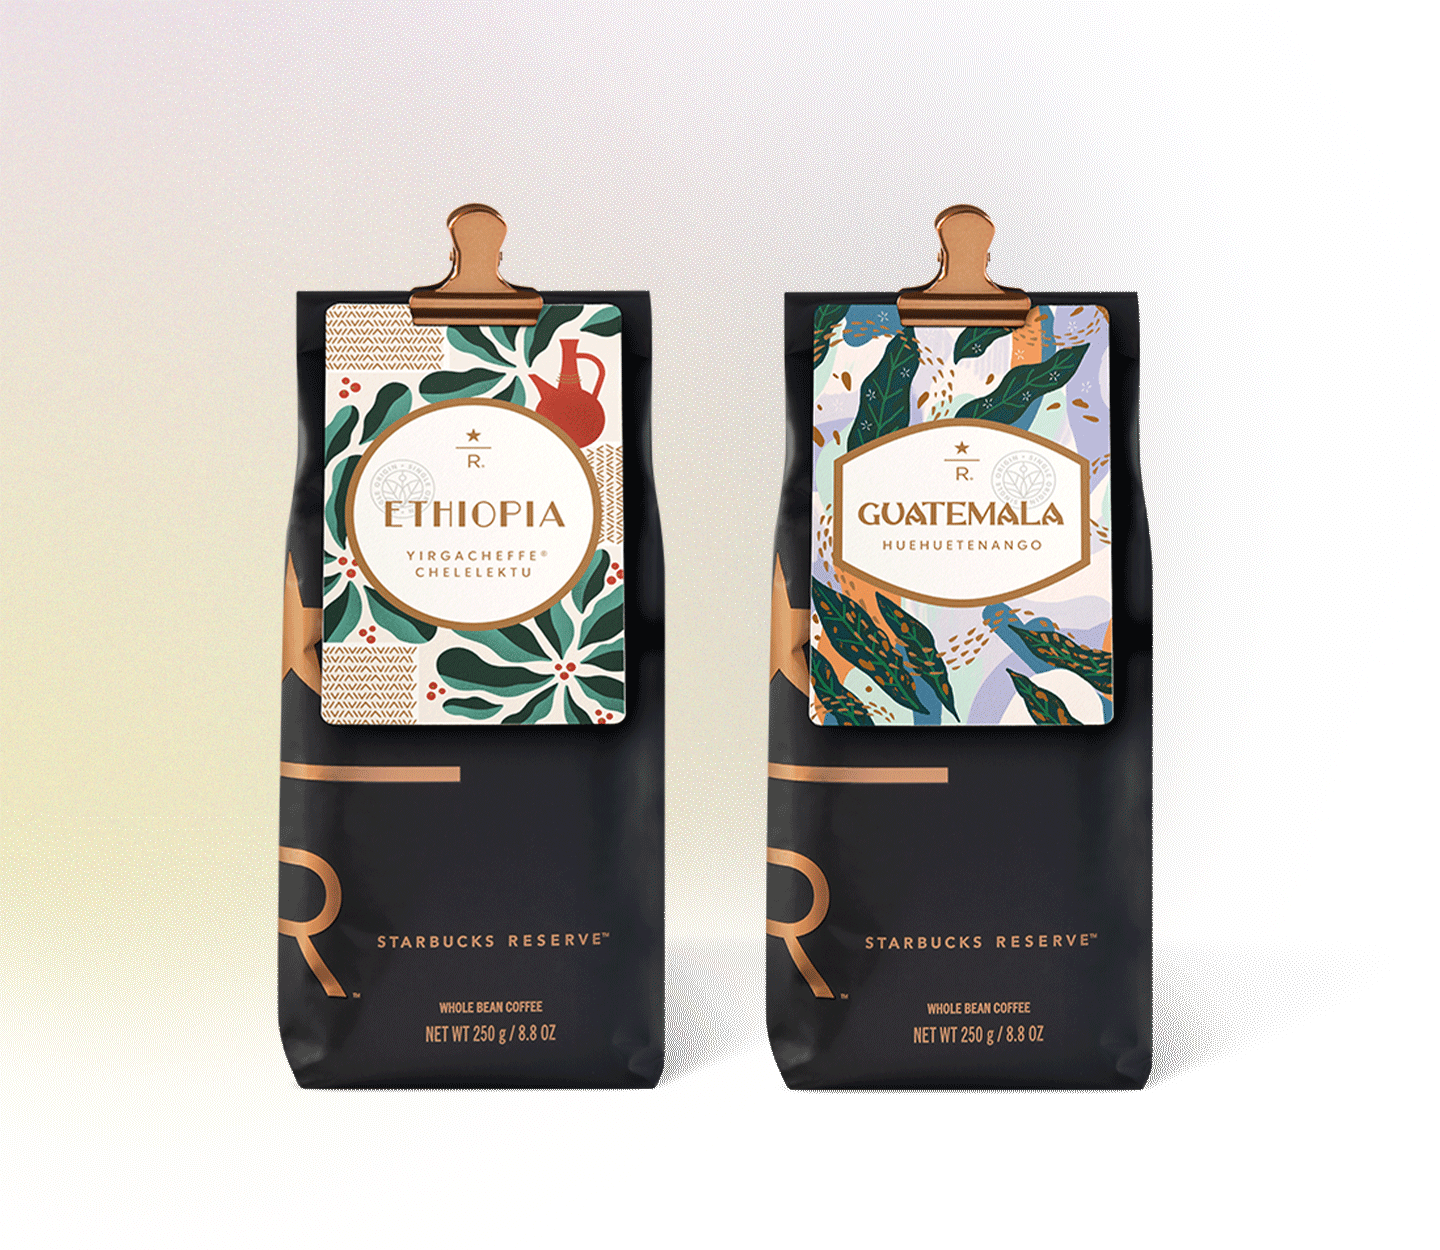 Two Starbucks Reserve® coffee bags.